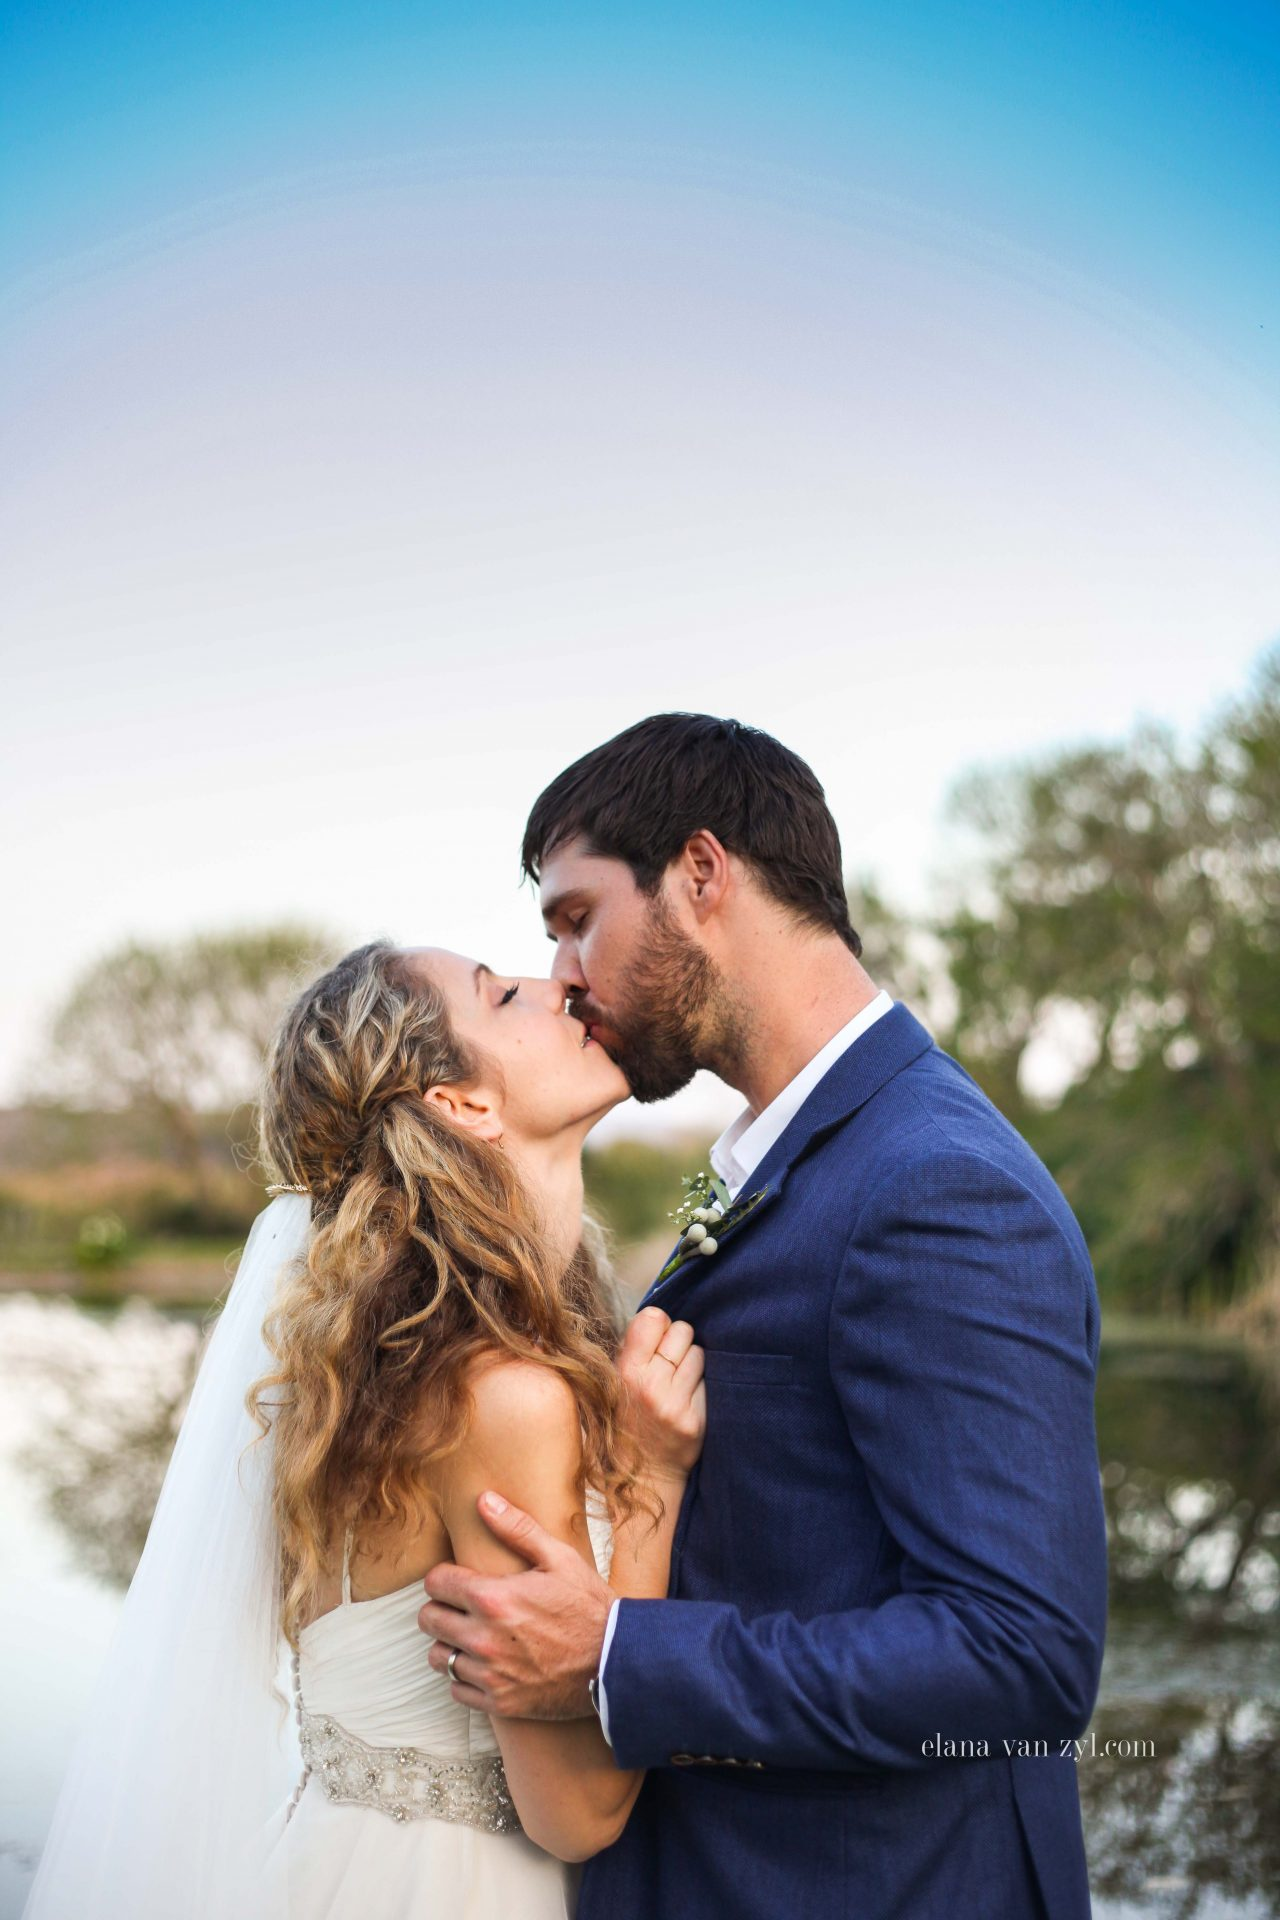 lorien-david-elana-van-zyl-swellendam-overberg-photographer-de-uijlenes-wedding-8389